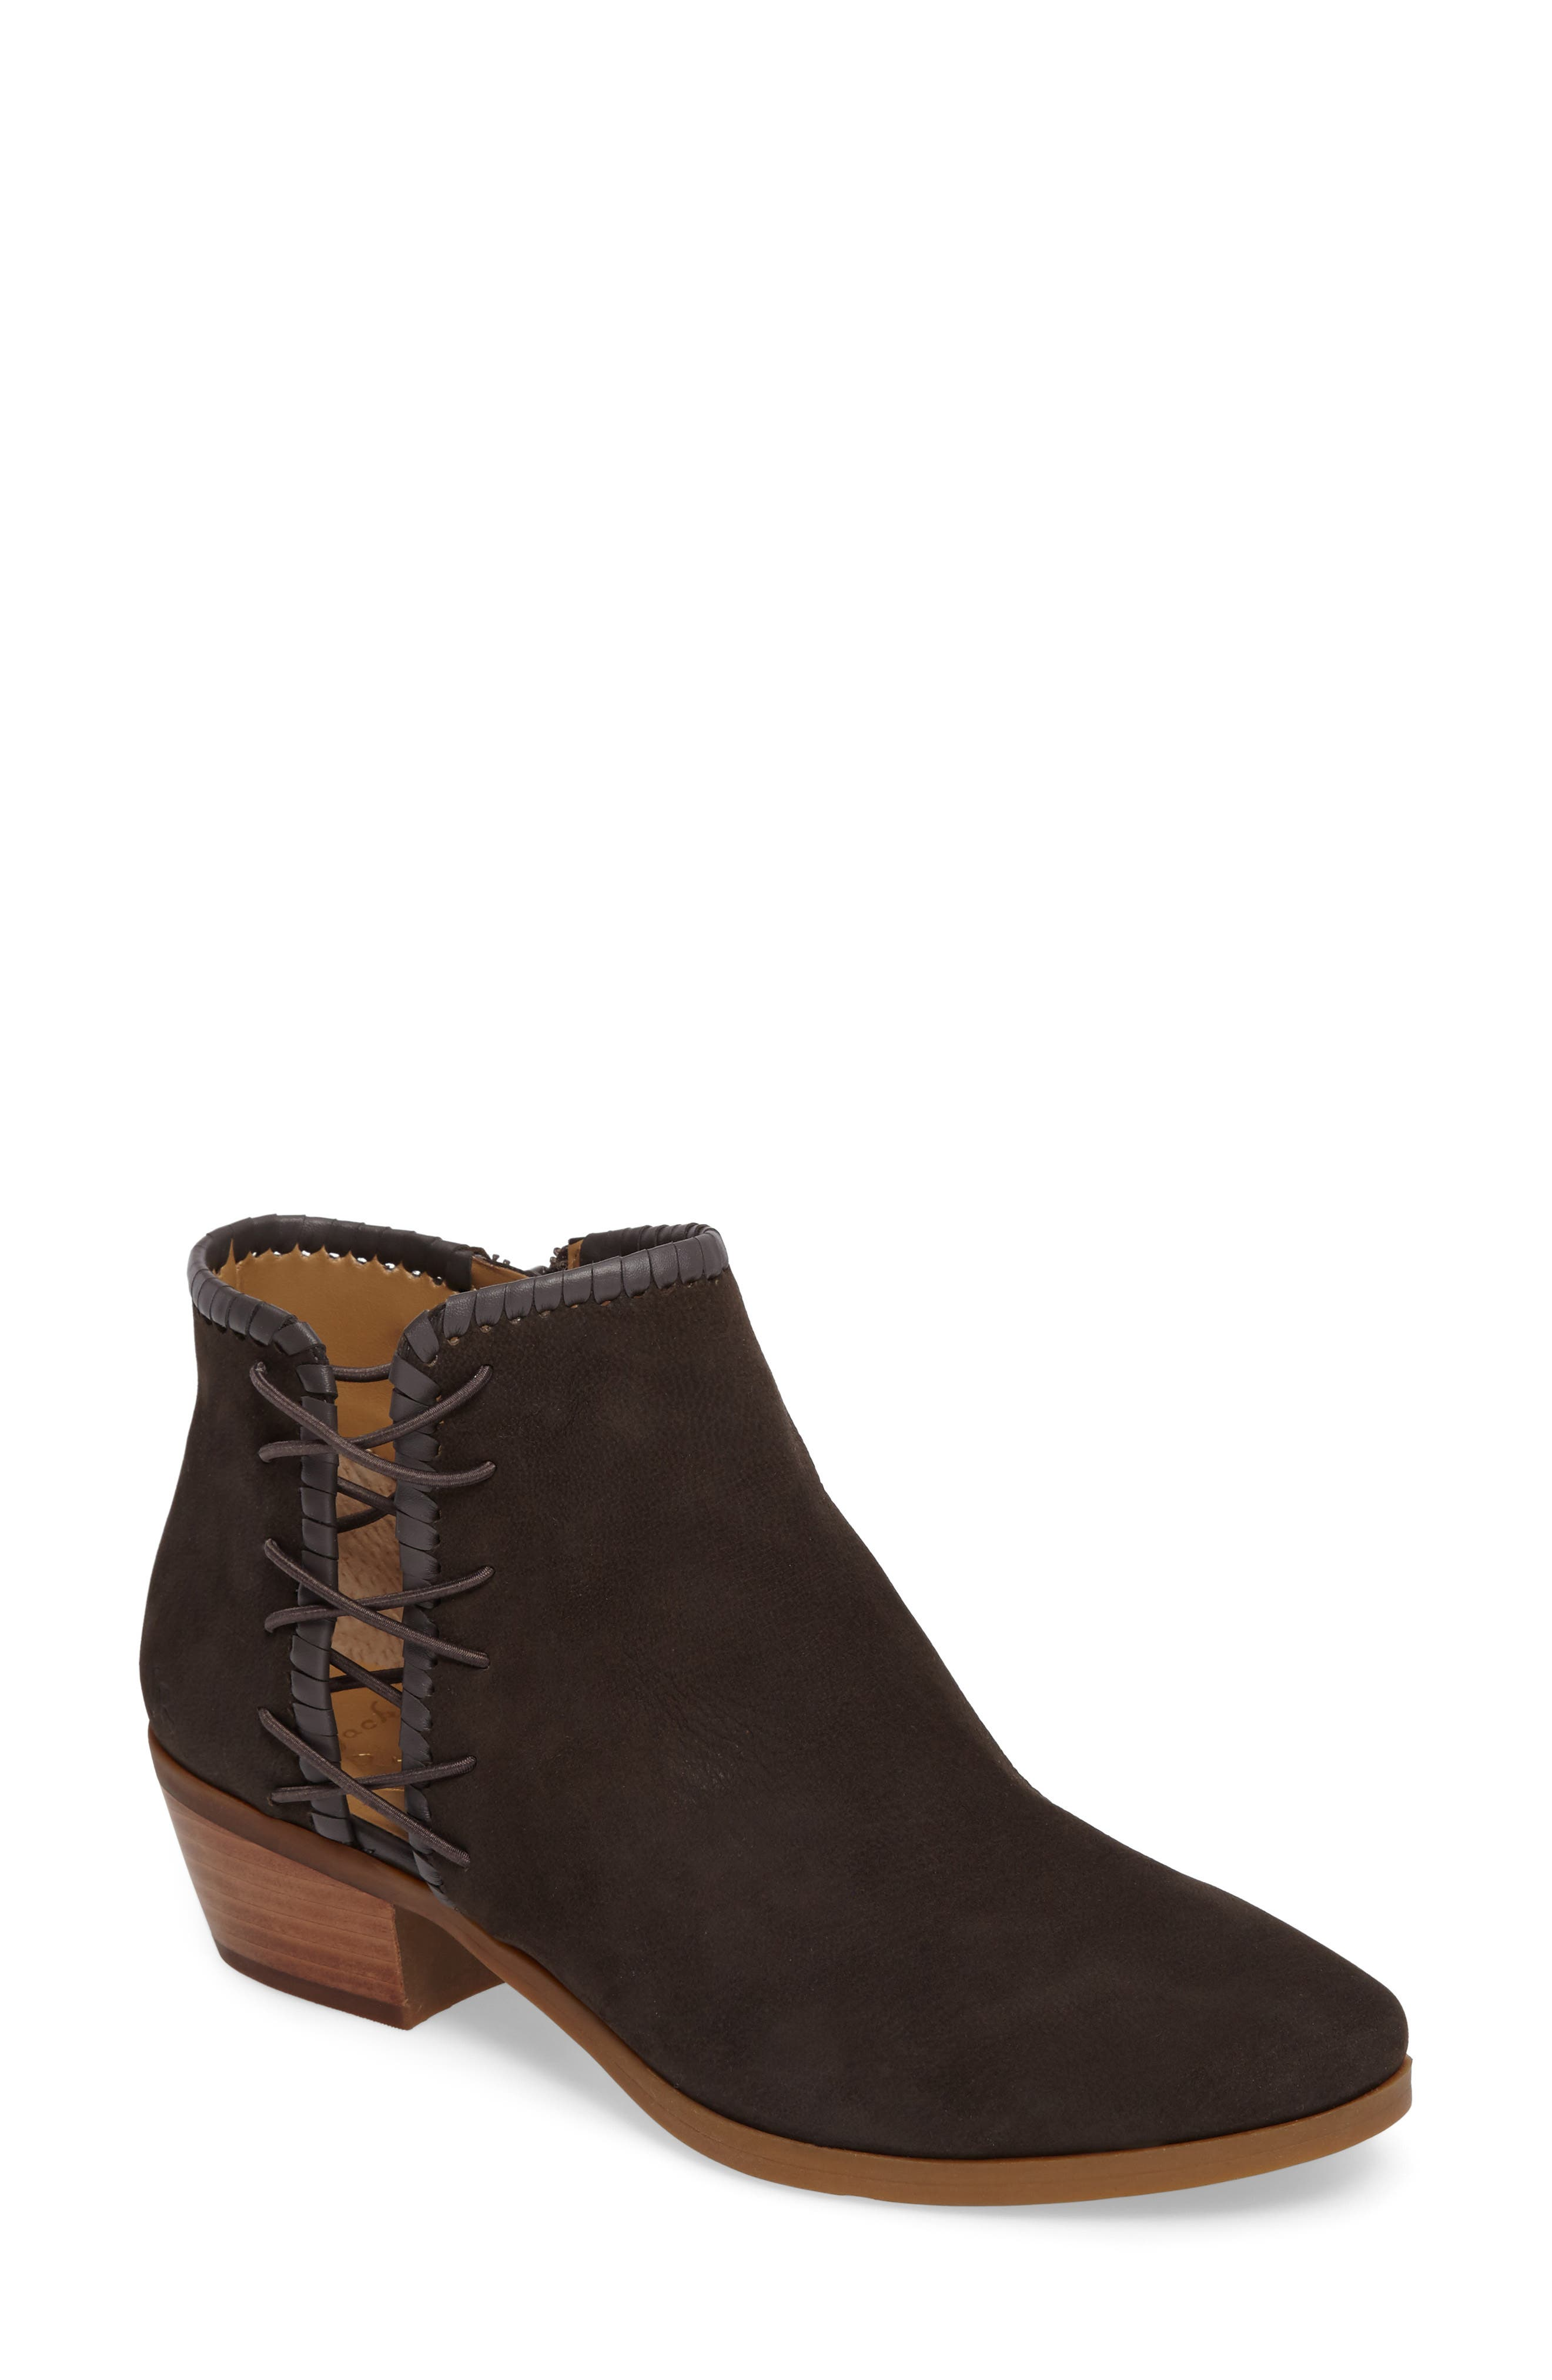 Reagan Split Shaft Bootie,                         Main,                         color, CHARCOAL LEATHER